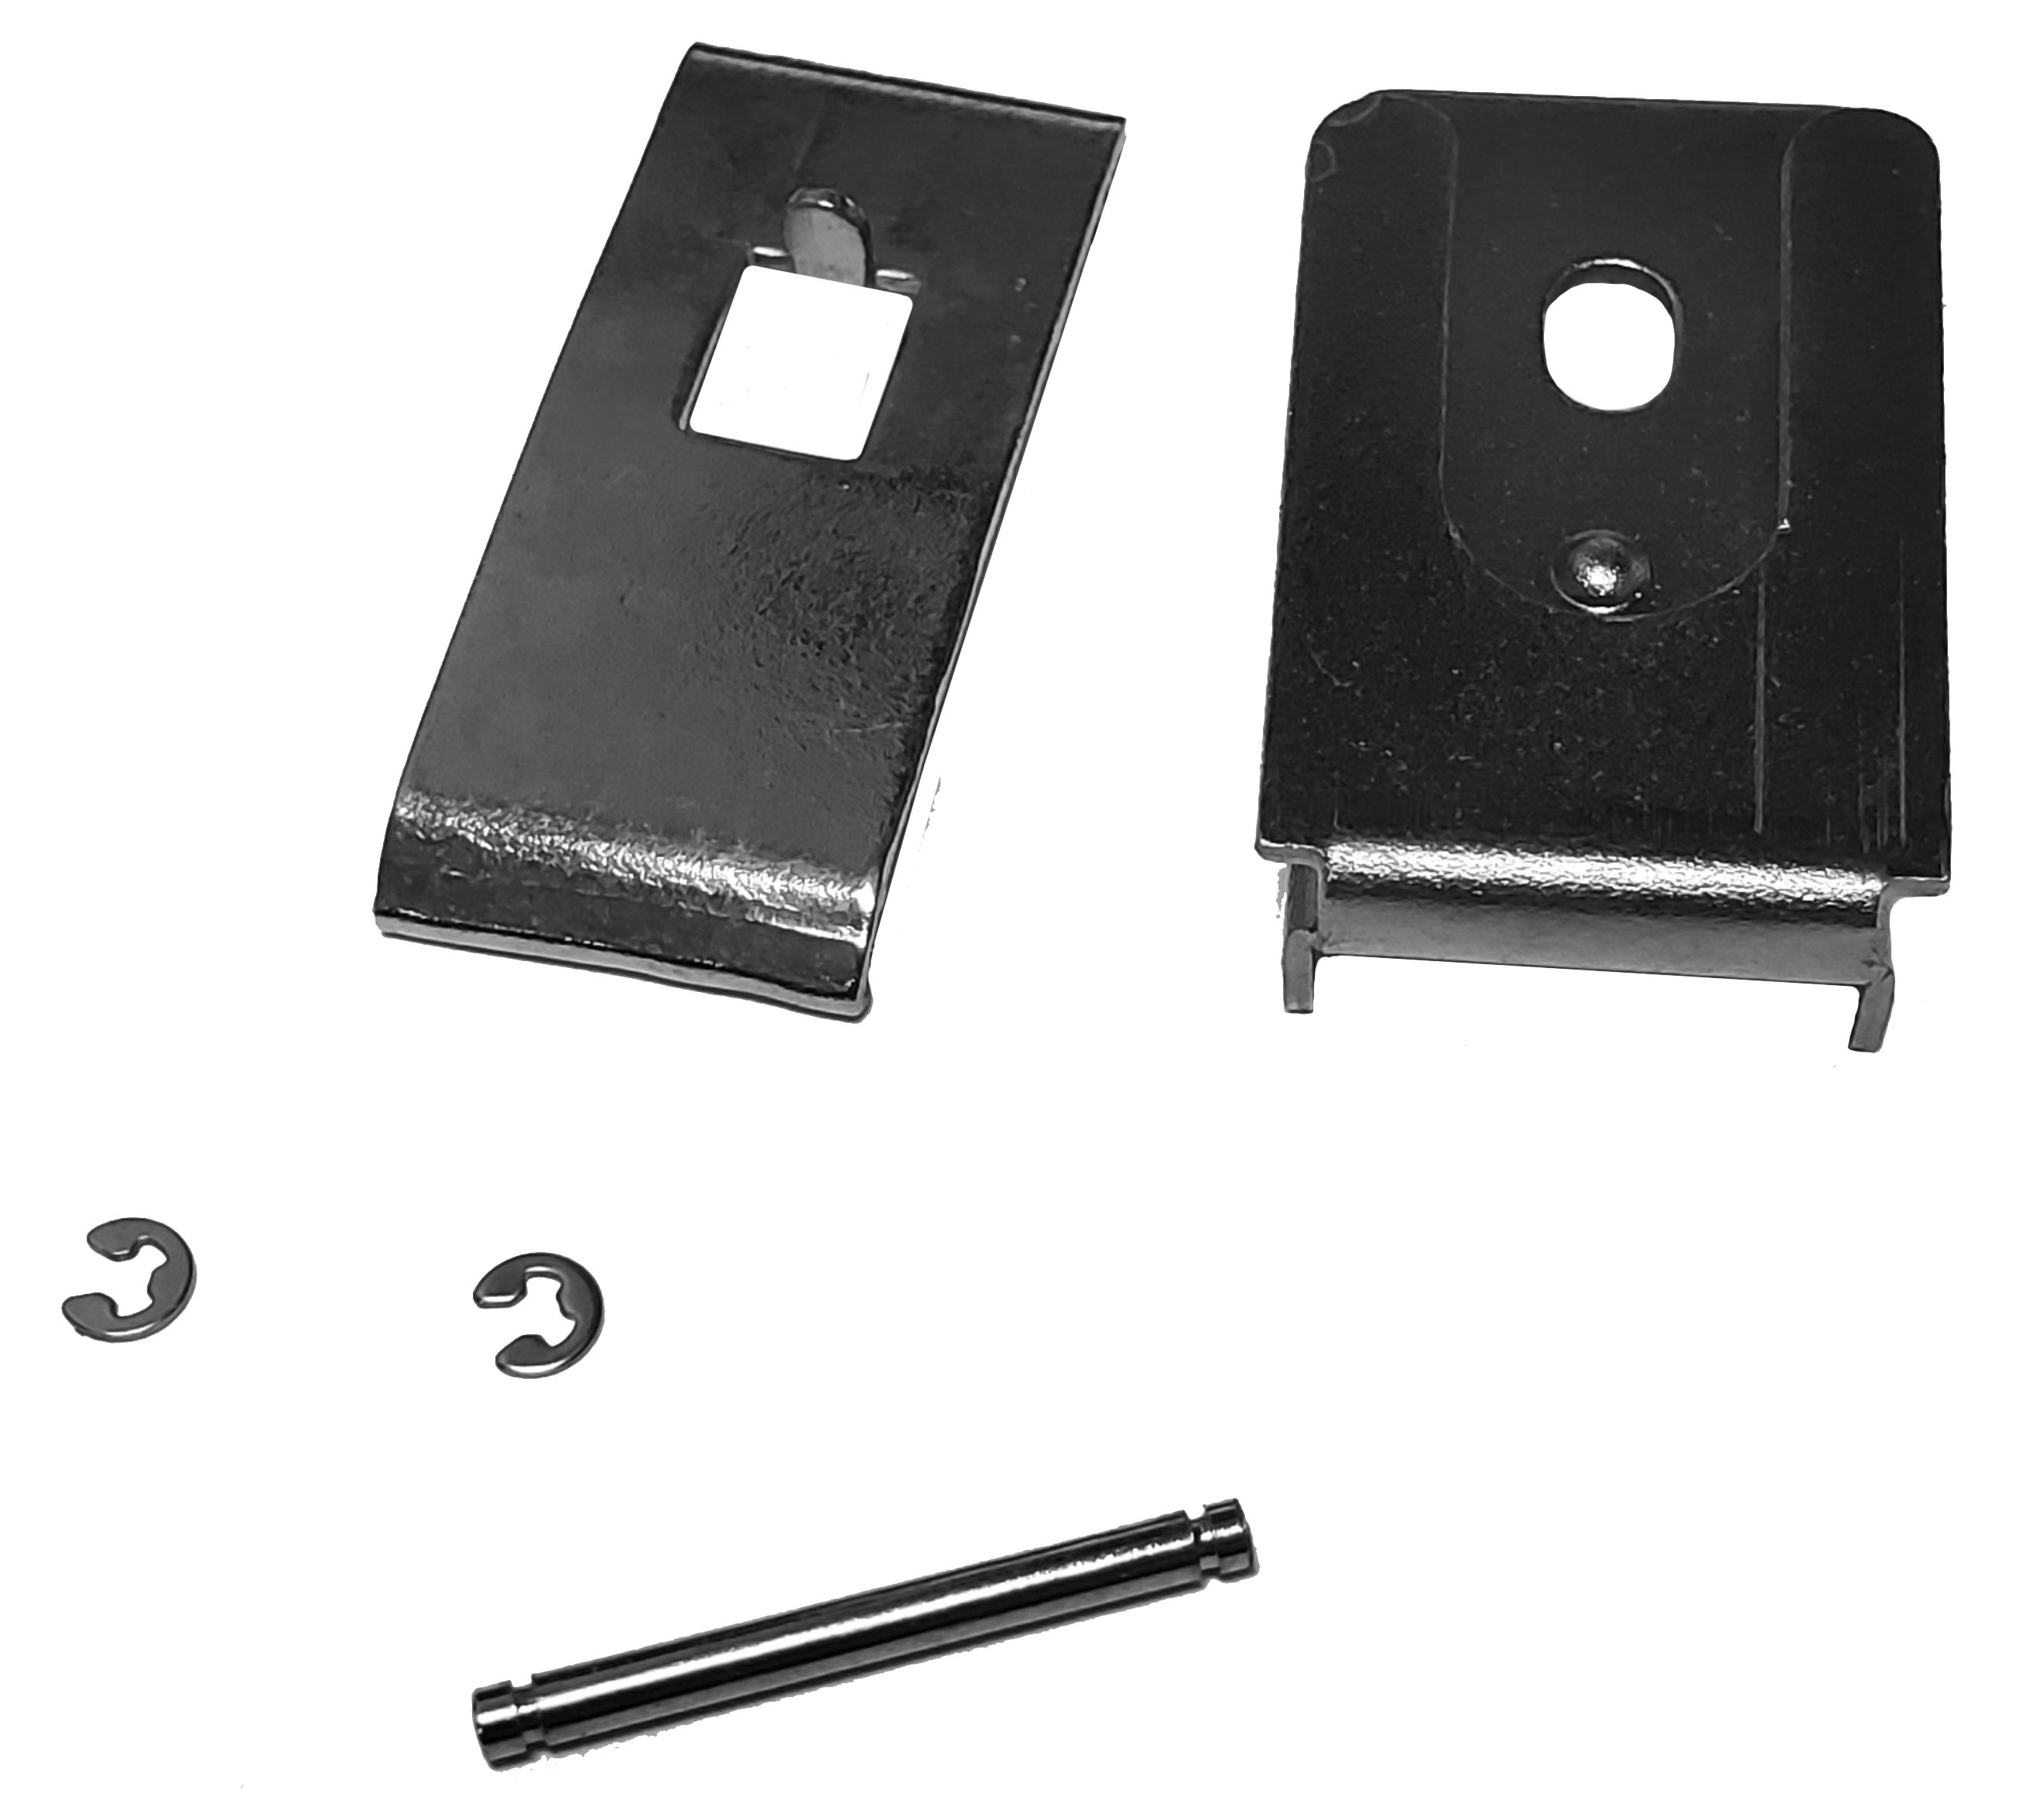 805 MIC CLIP - Midland Replacement Mic Clip For 75-805 Radio